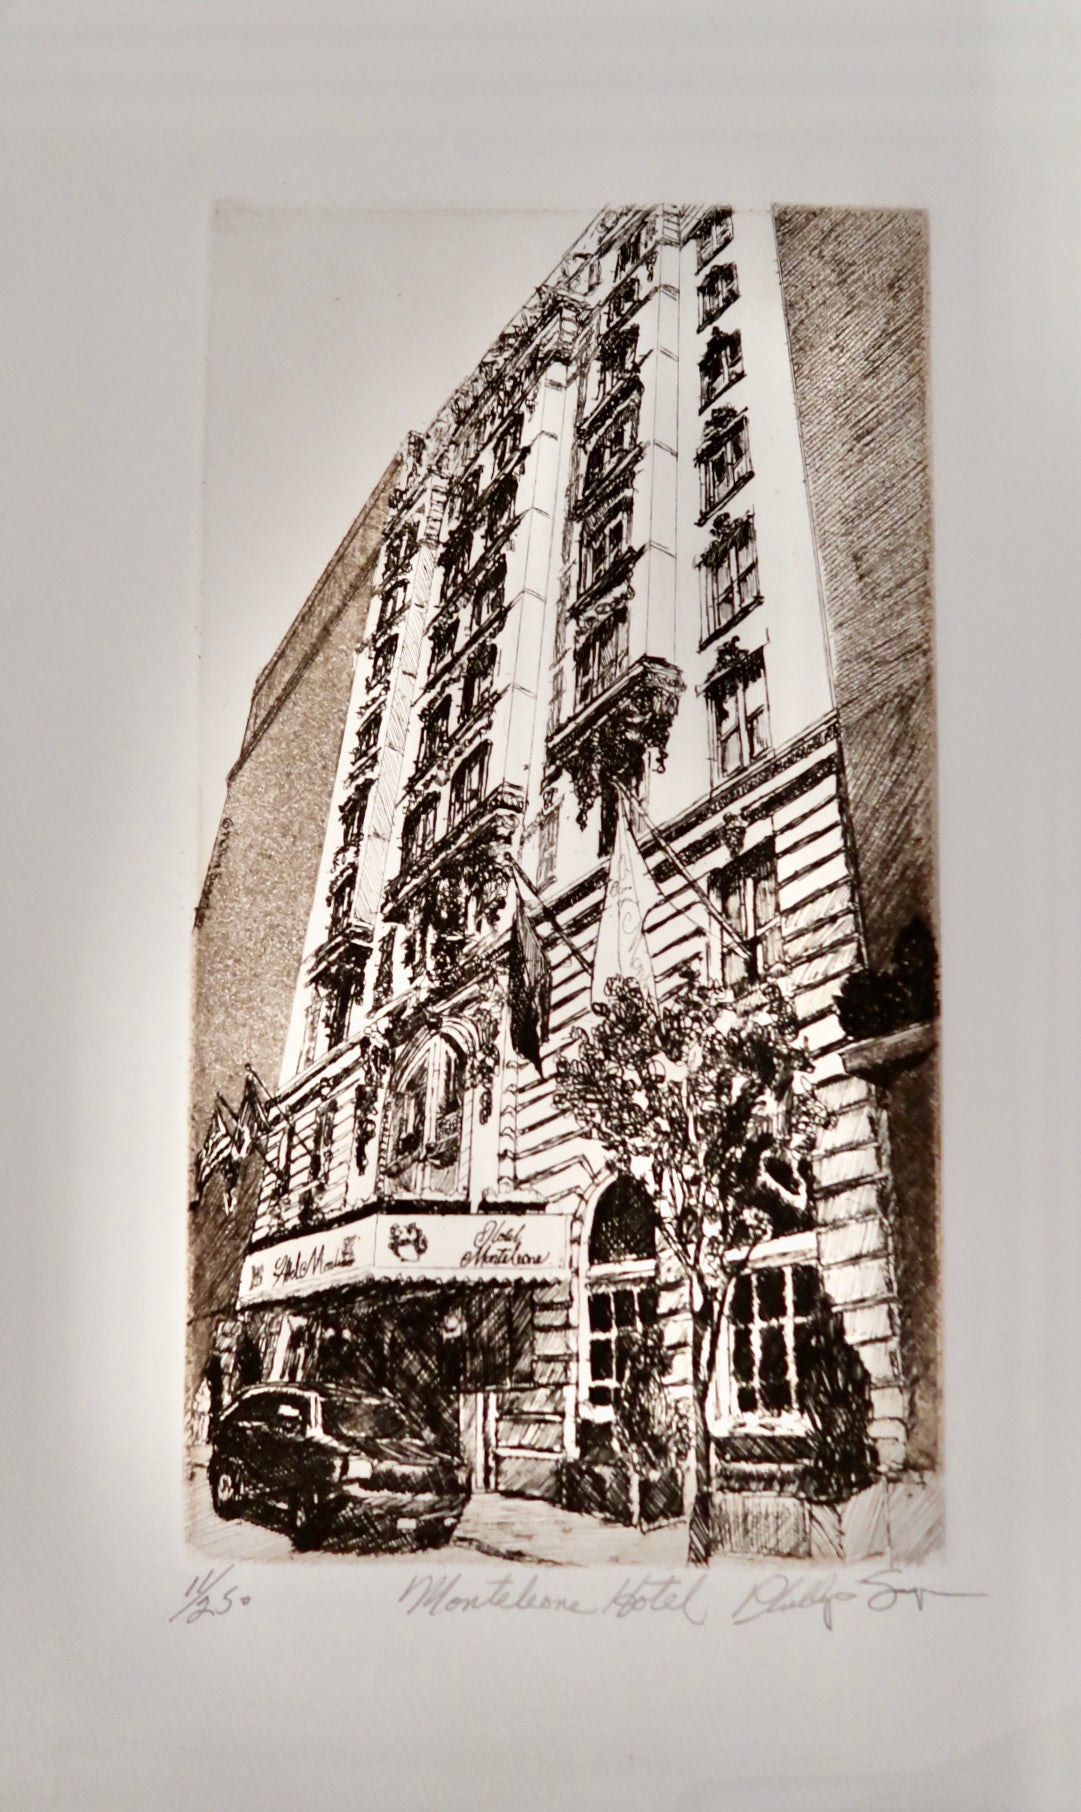 Hotel Monteleone Artist Proof by Phillip Sage